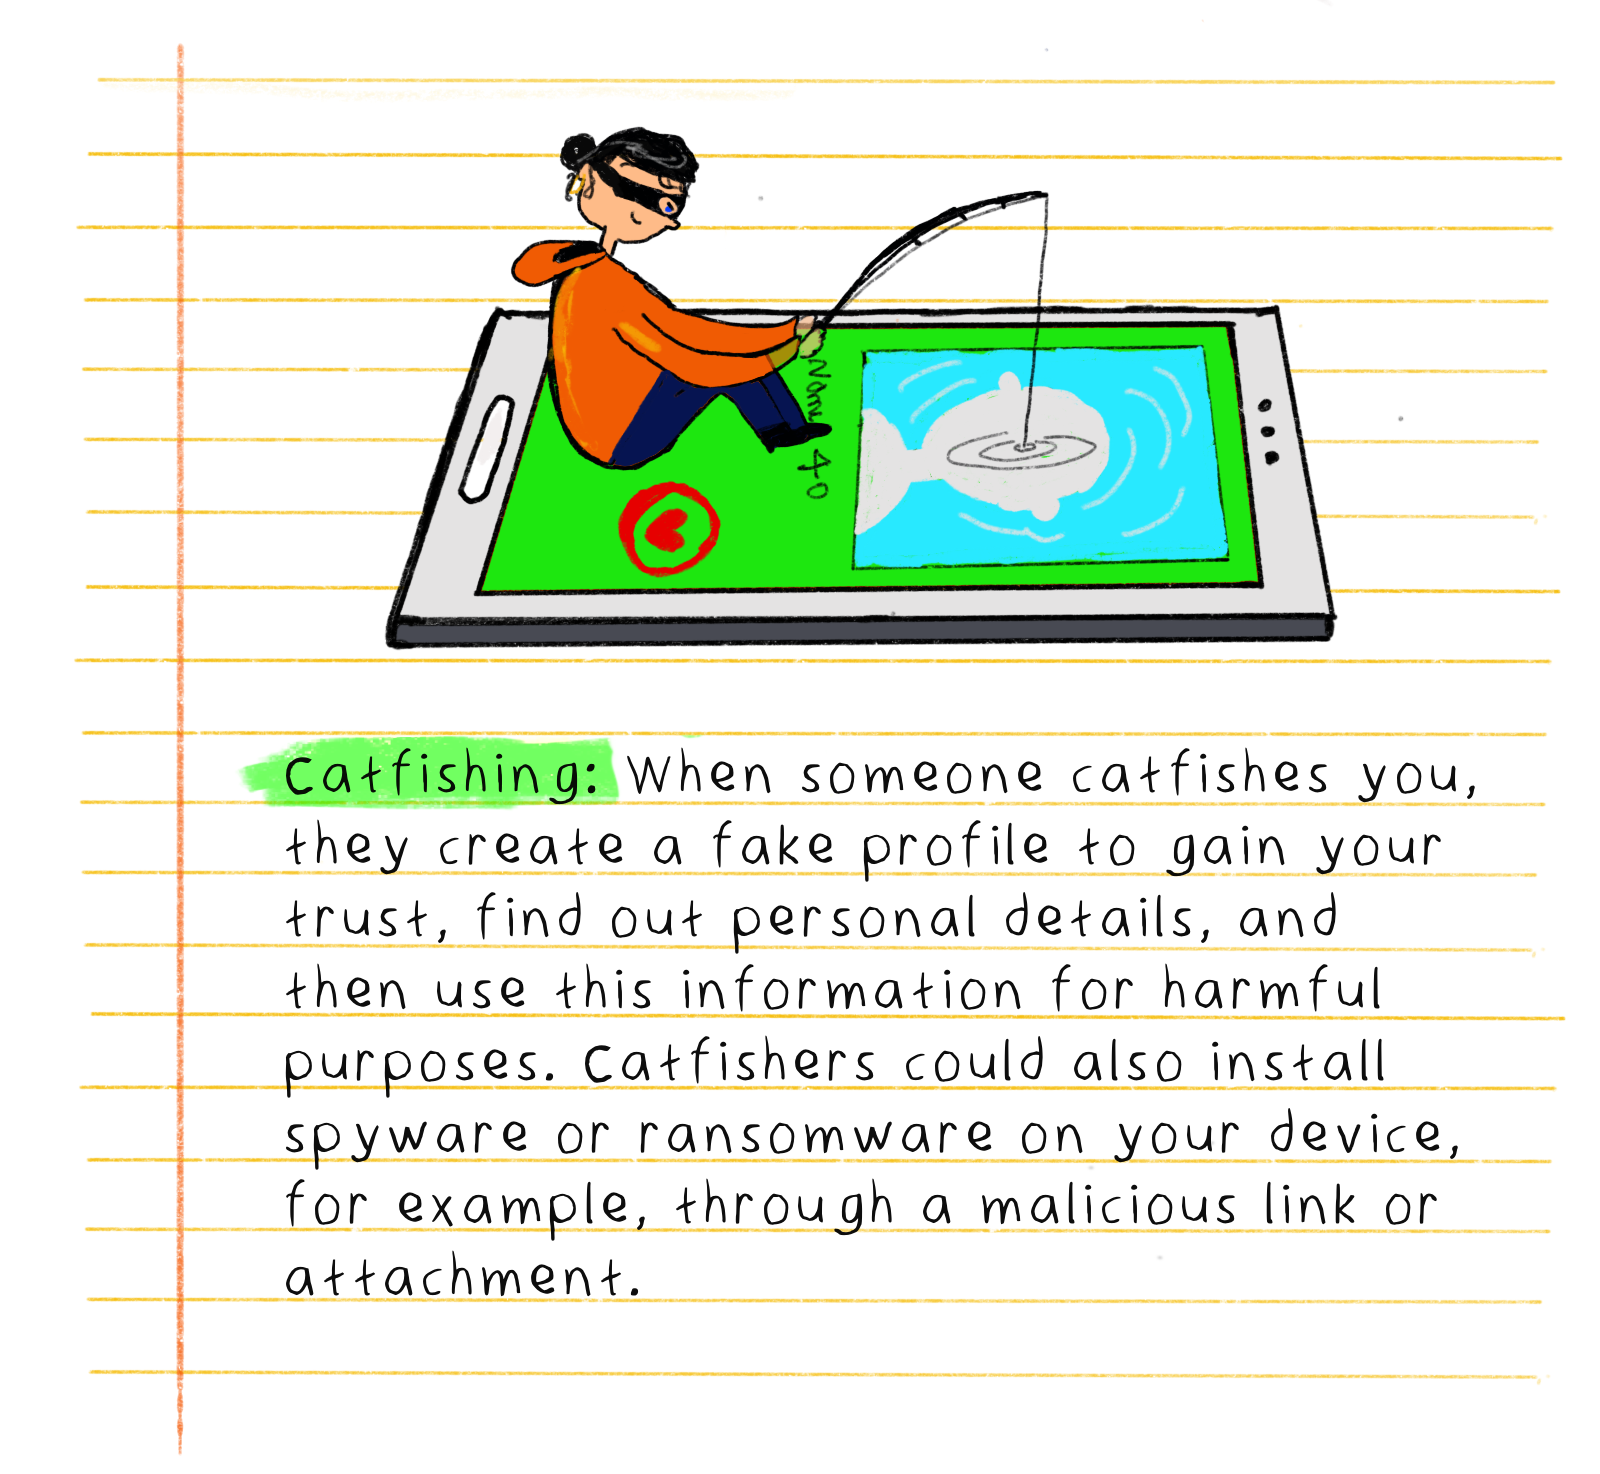 Catfishing: When someone catfishes you, they create a fake profile to gain your trust, find out personal details, and then use this information for harmful purposes. Catfishers could also install spyware or ransomware on your device, for example, through a malicious link or attachment.